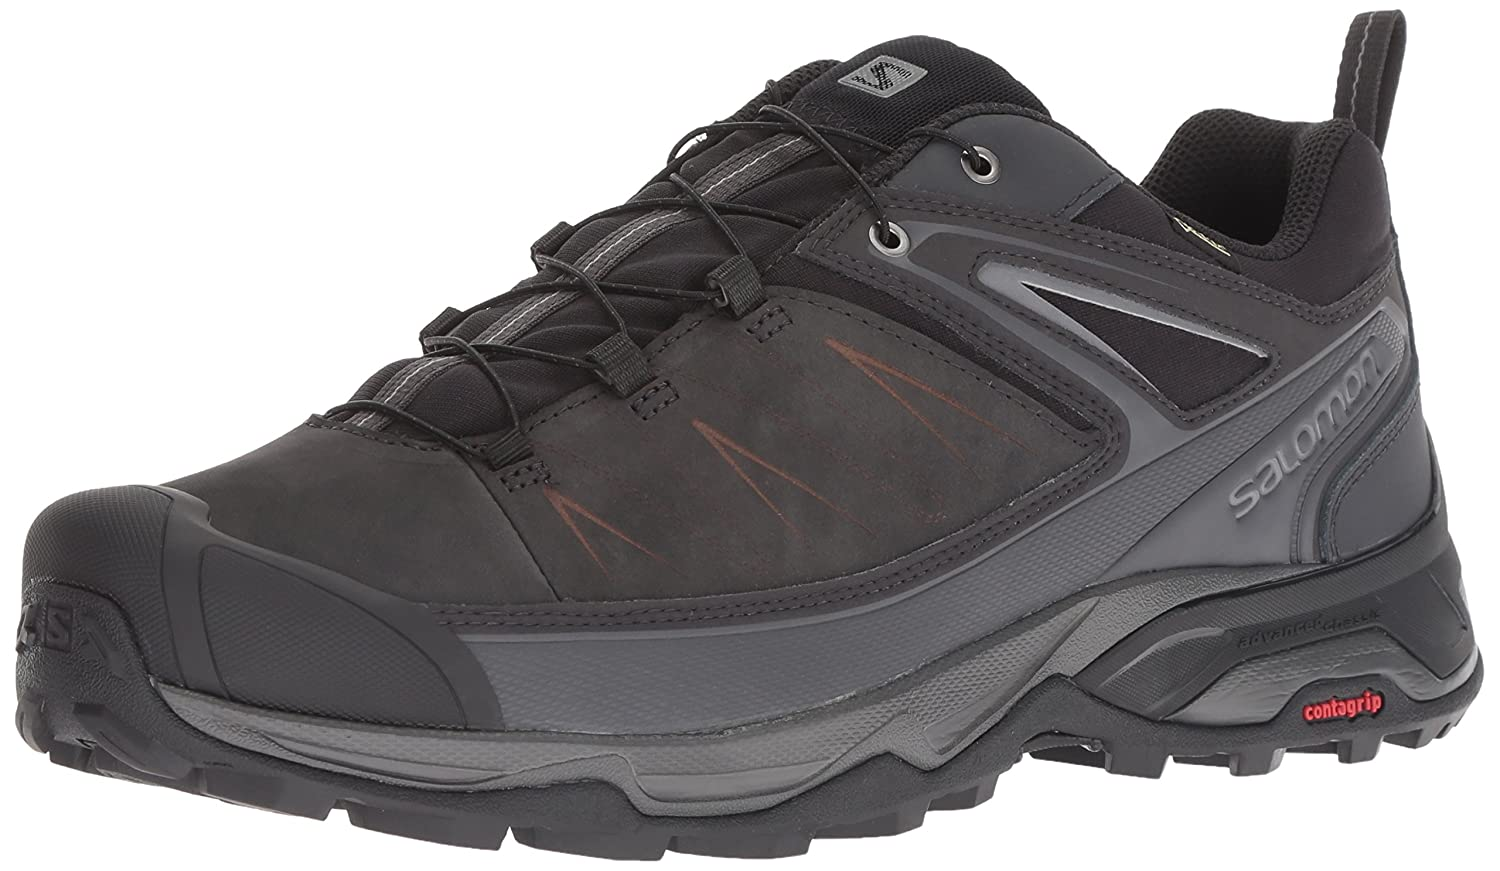 Salomon Shoes X Ultra 3 LTR GTX Delicioso/Bunge, Chaussures de Trail Homme